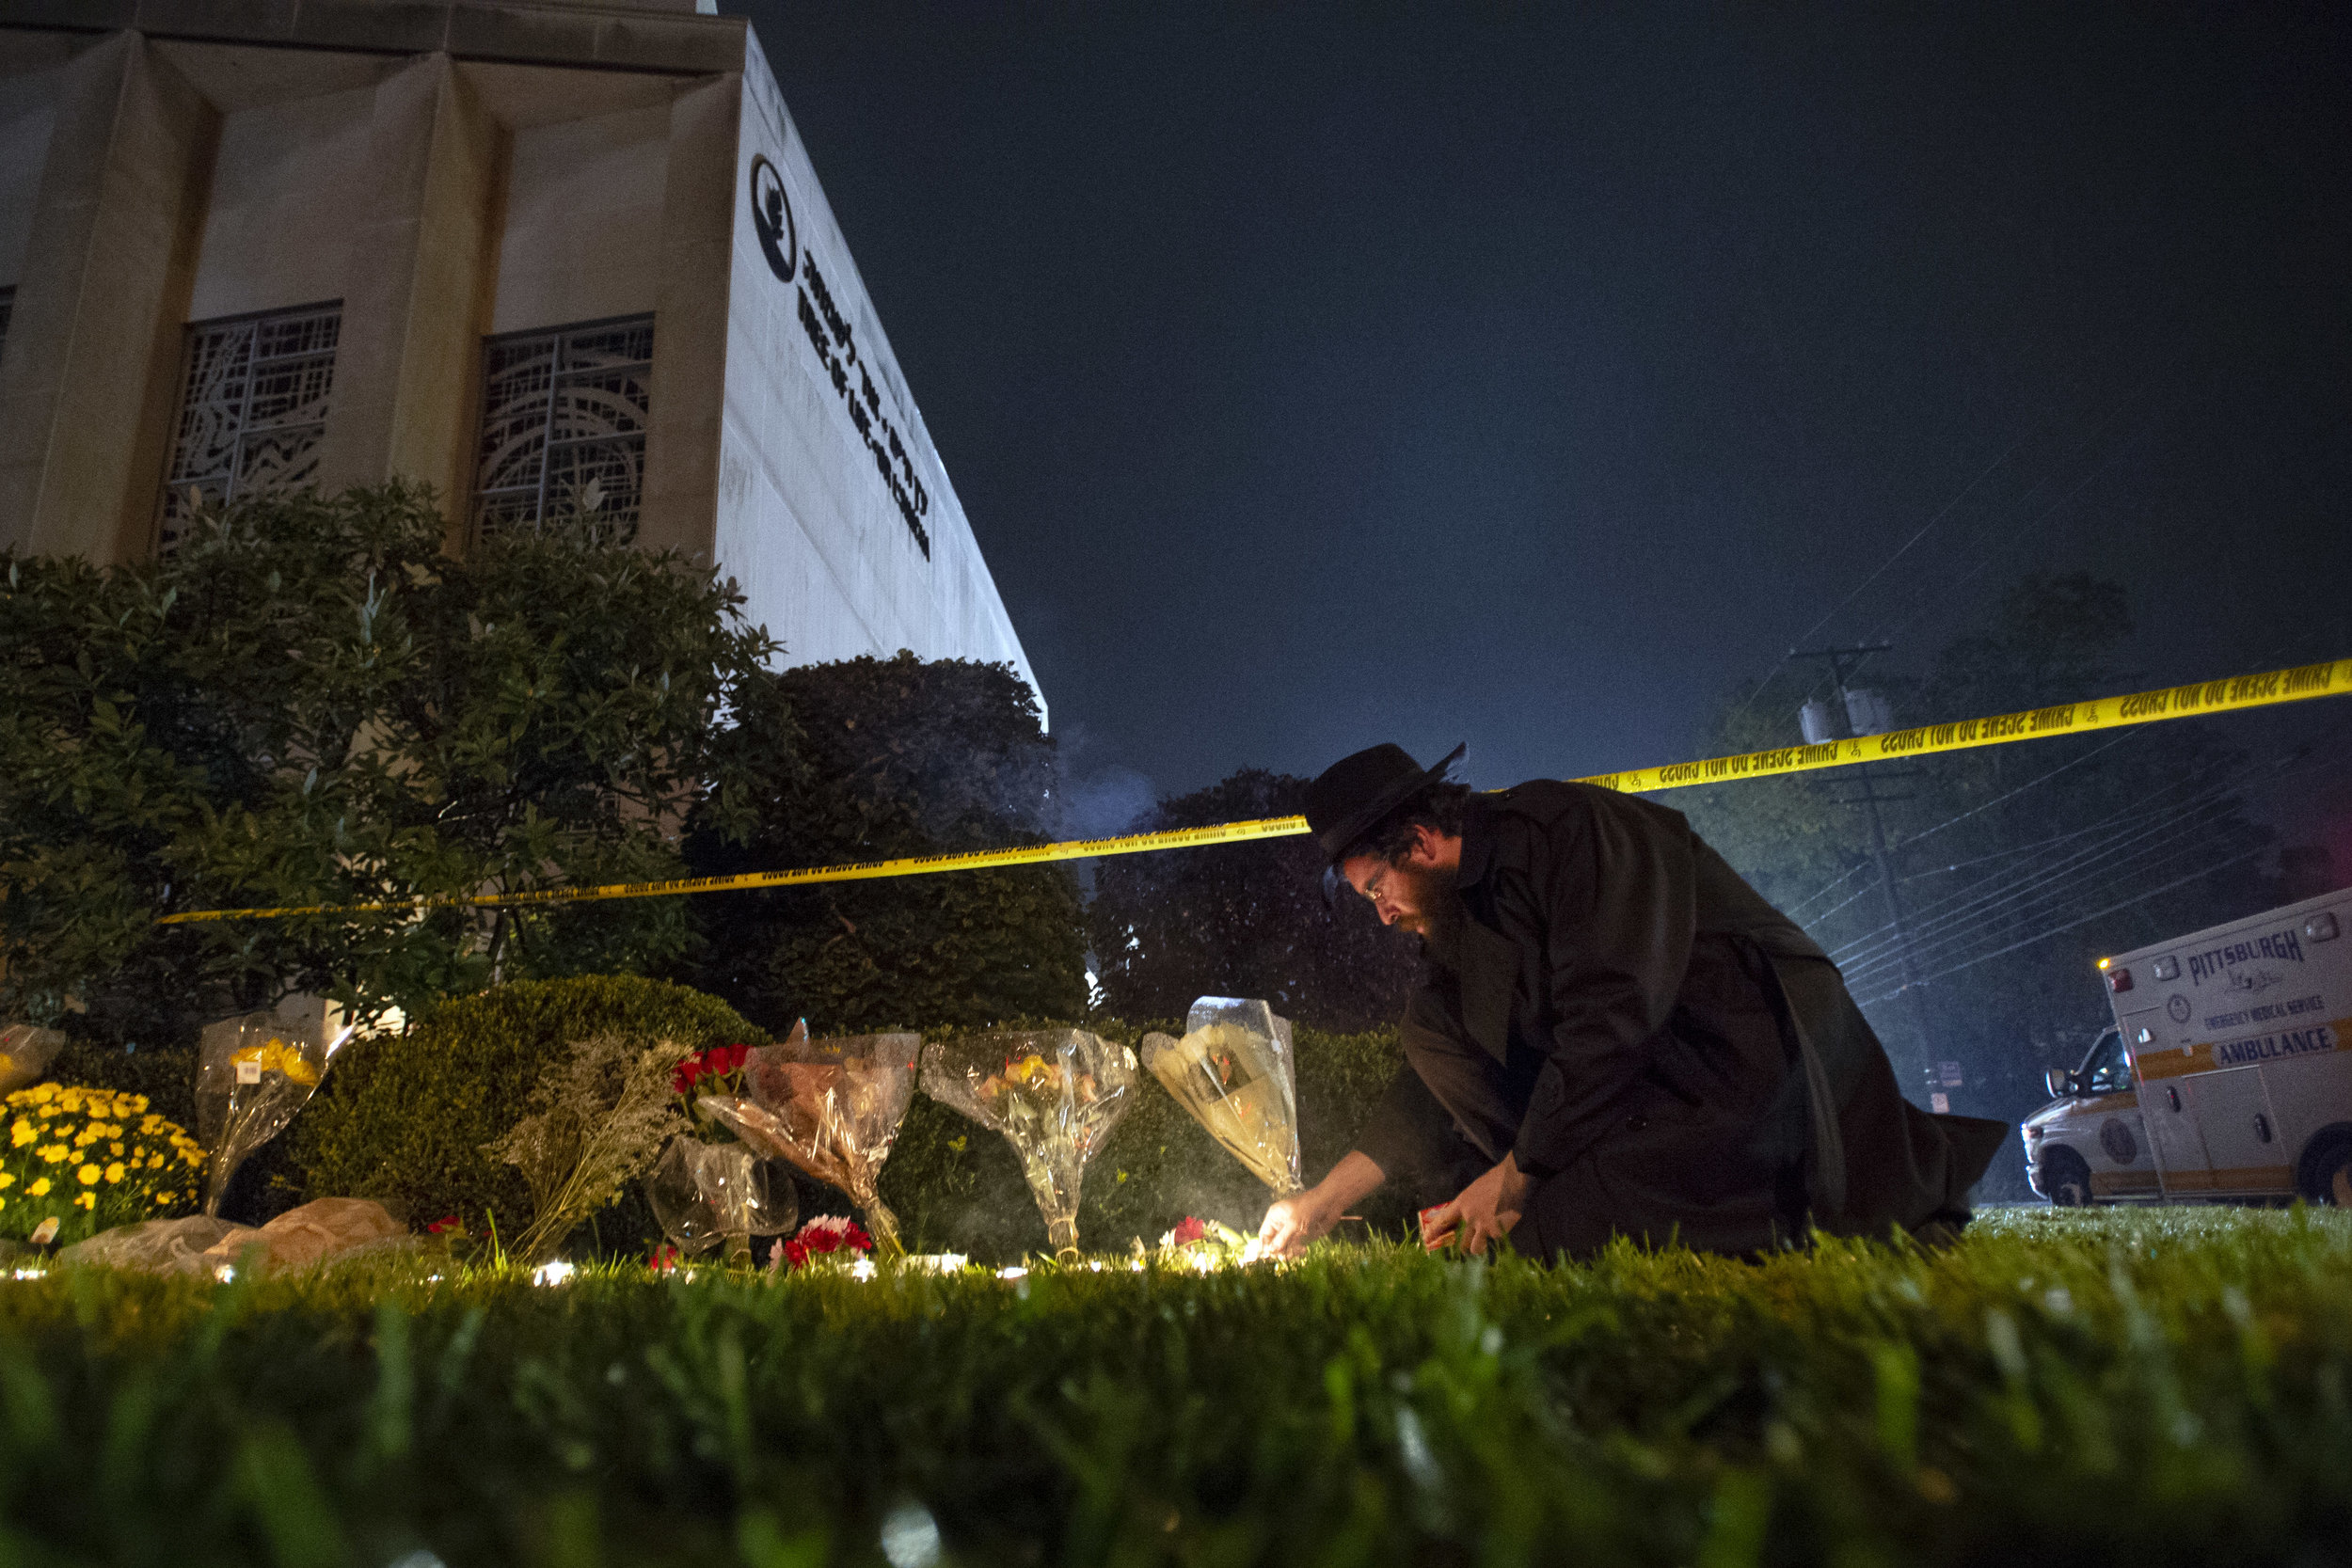 Rabbi Eli Wilansky lights a candle after a mass shooting at Tree of Life Congregation on Saturday, Oct. 27, 2018, in Squirrel Hill. Eleven people were killed and six were wounded, including four police officers. (Steph Chambers/Post-Gazette)